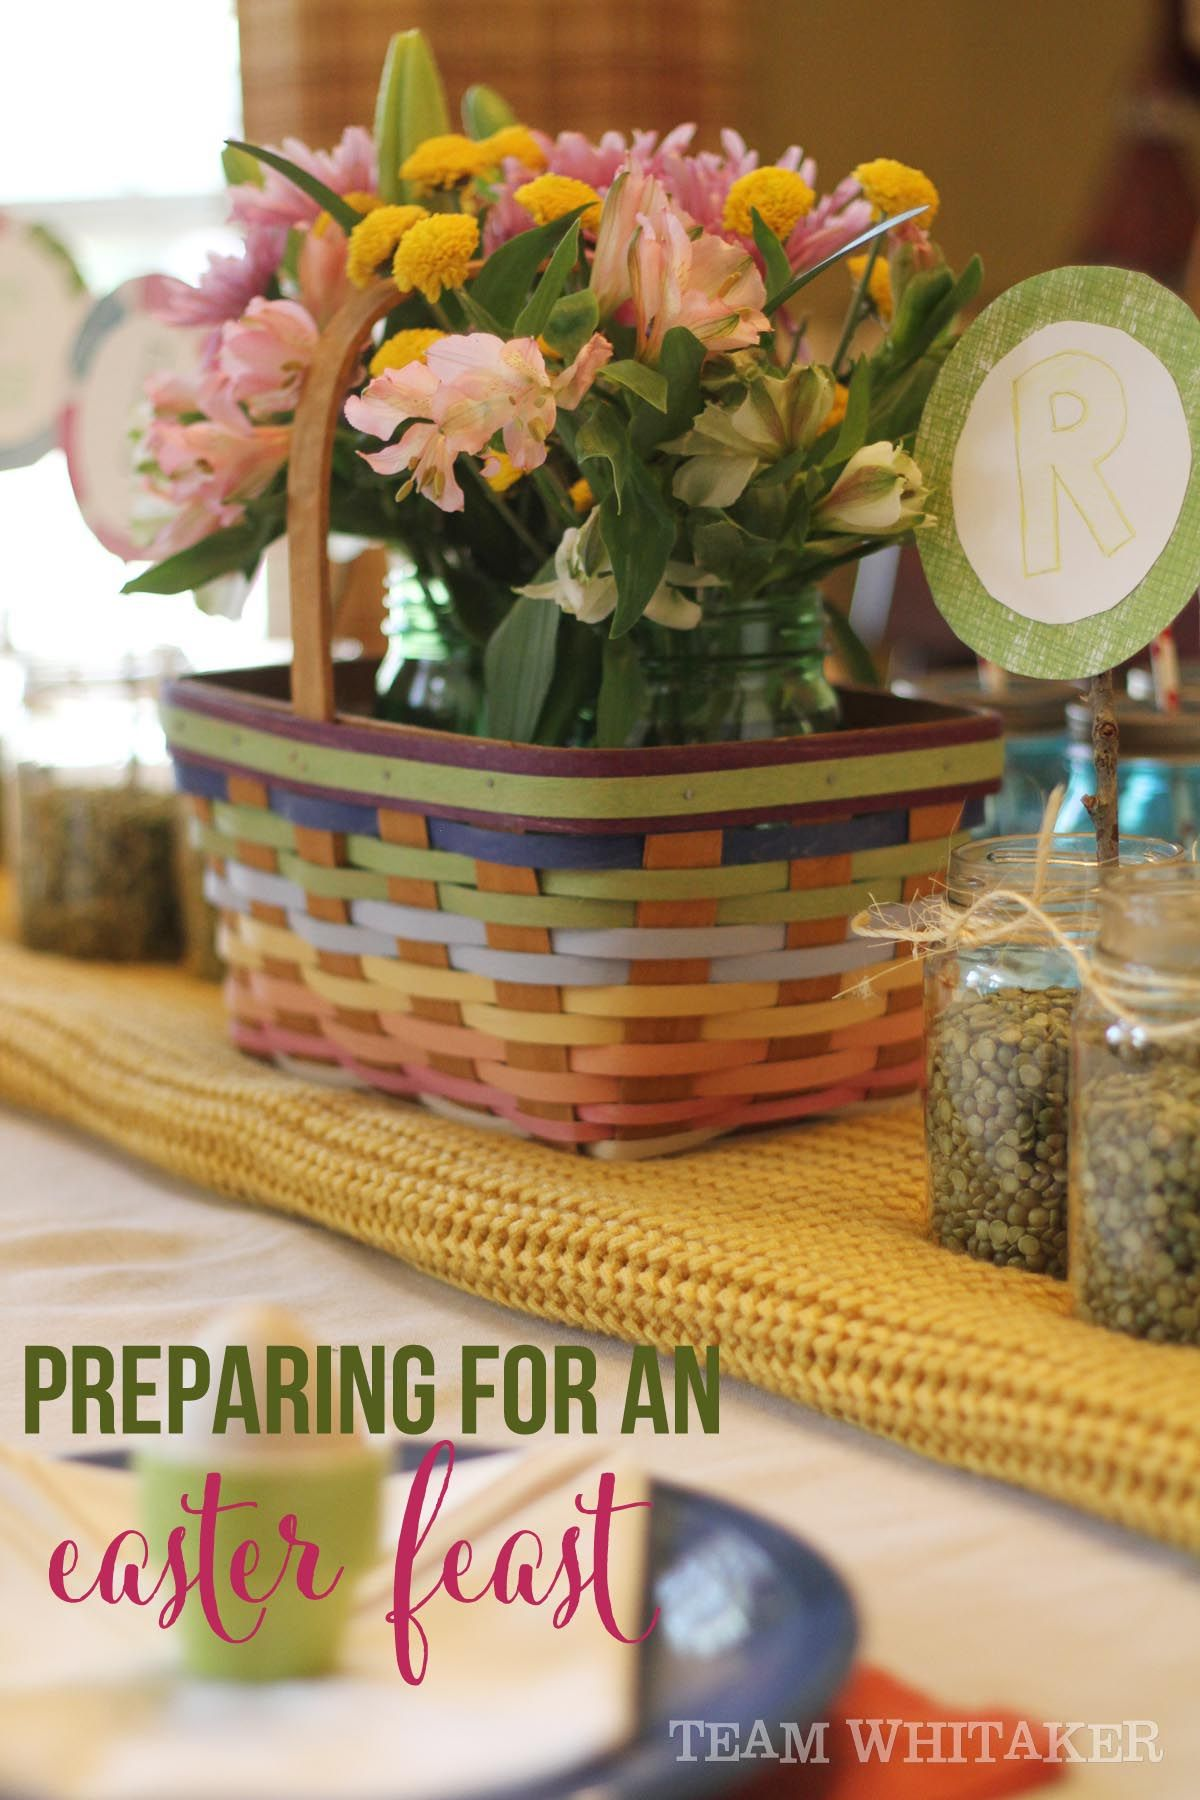 It's time to prepare your heart (and your home!) for an Easter feast. This simple DIY craft for kids is sure to keep little hands busy while you finish the Easter dinner preparations. And, it's a reminder that your dinner table's beauty can be found in the details. It's where love resides!